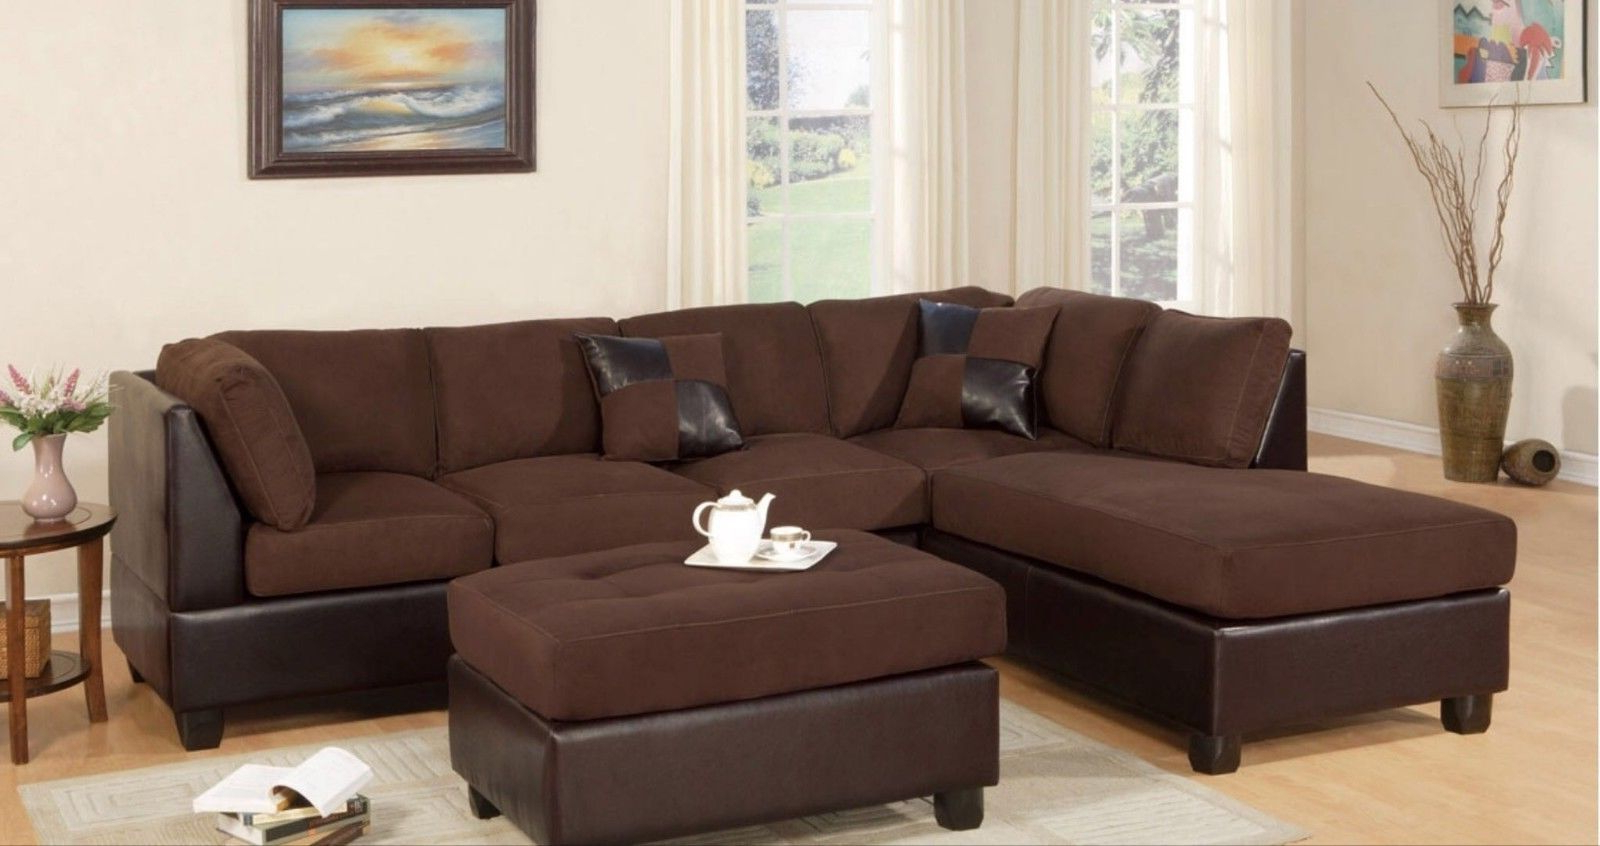 Norfolk Chocolate 6 Piece Sectionals With Regard To 2019 Sectional Sofa Modern Fabric Microfiber Faux Leather Sectional Sofa (View 14 of 20)